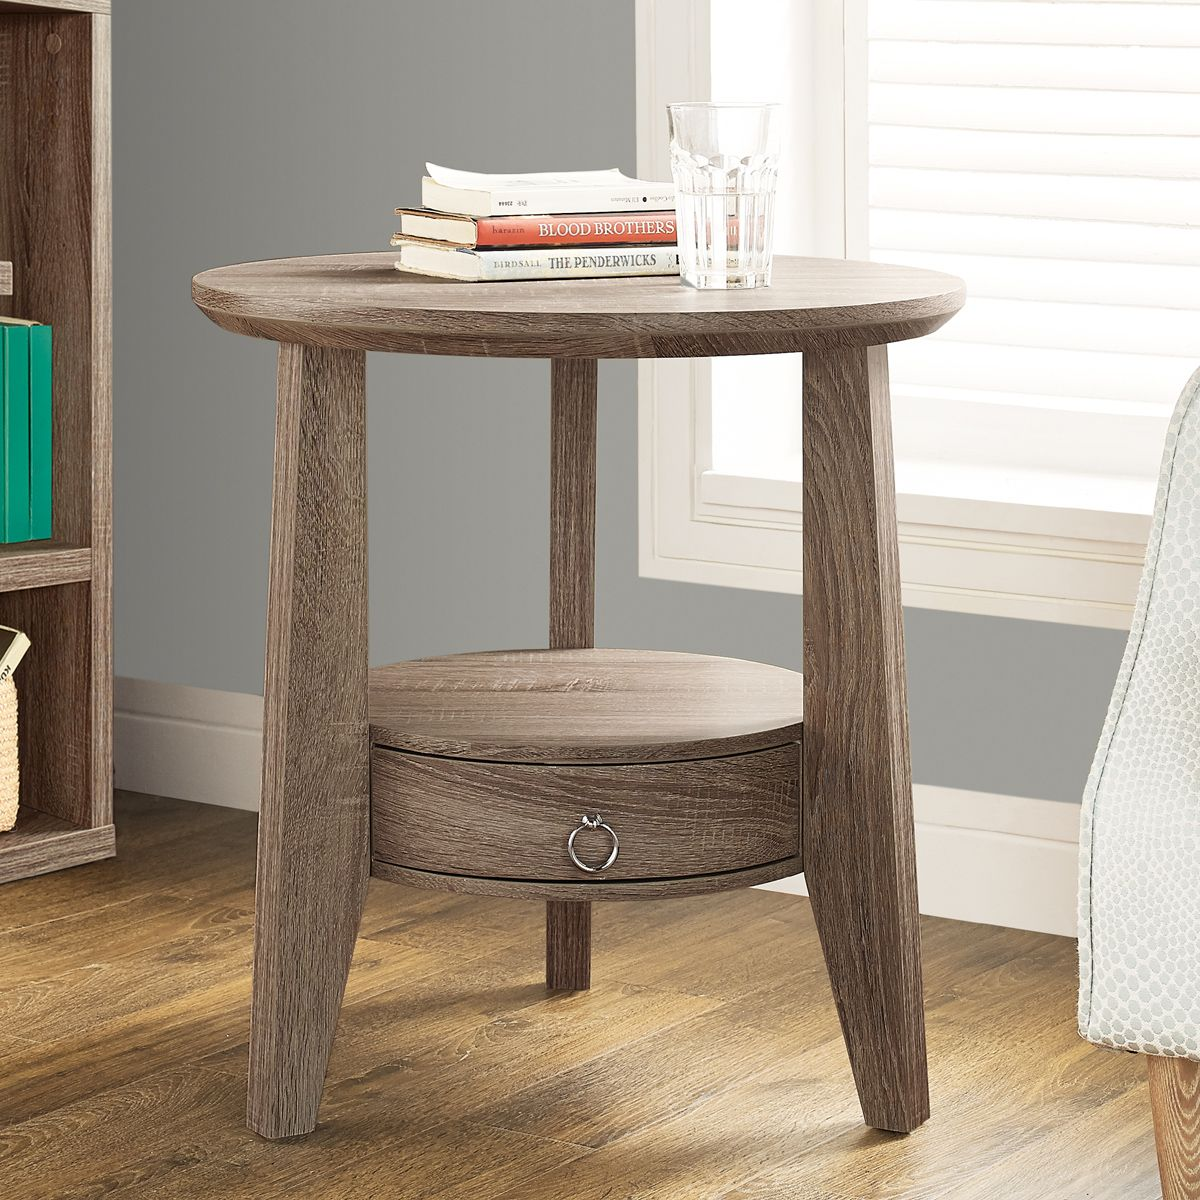 Best Seller Curved Accent Console Table Decor Storage: Woody Accent Table #table #reclaimed #snack #furniture